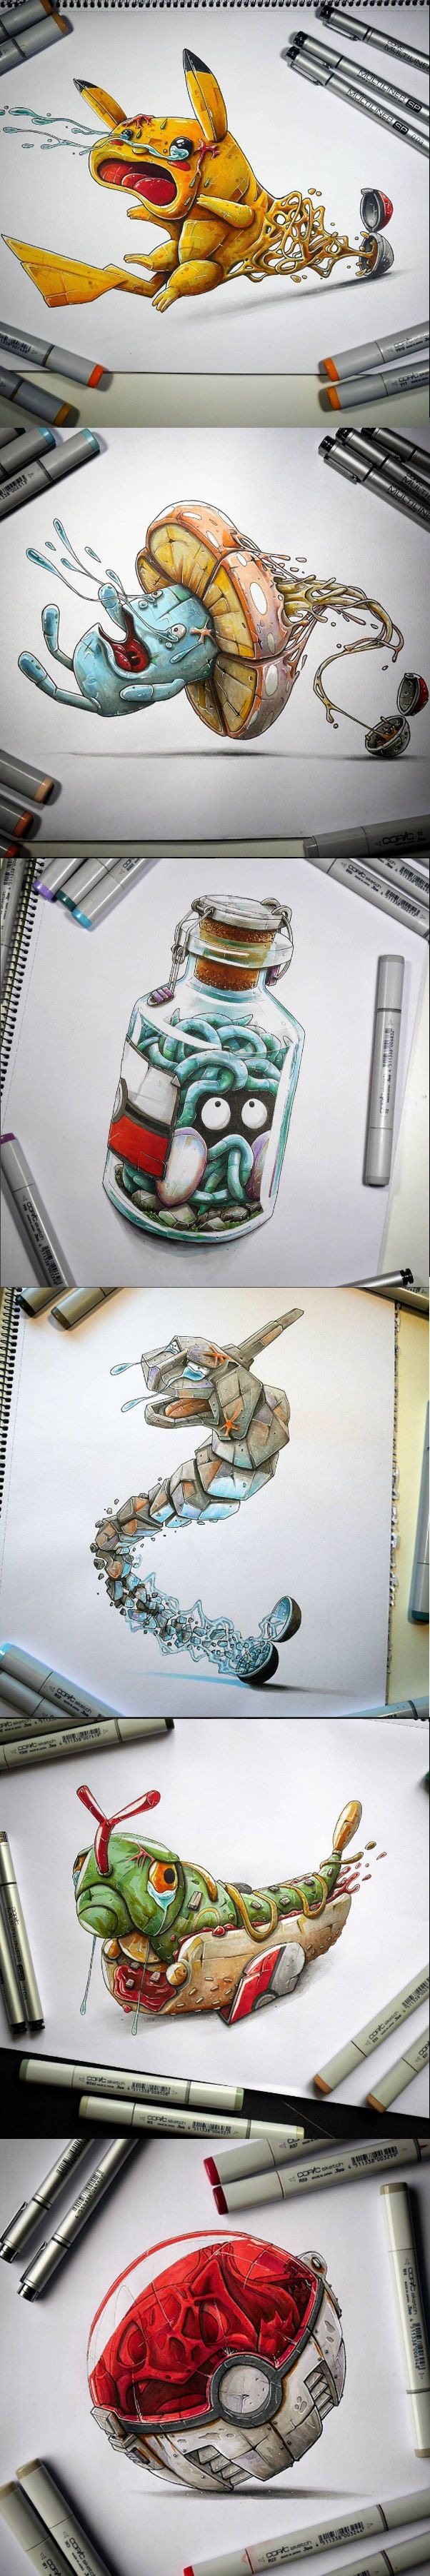 Why Pikachu Refuses To Enter The Pokeball (By Tino Valentin Copic) - 9GAG